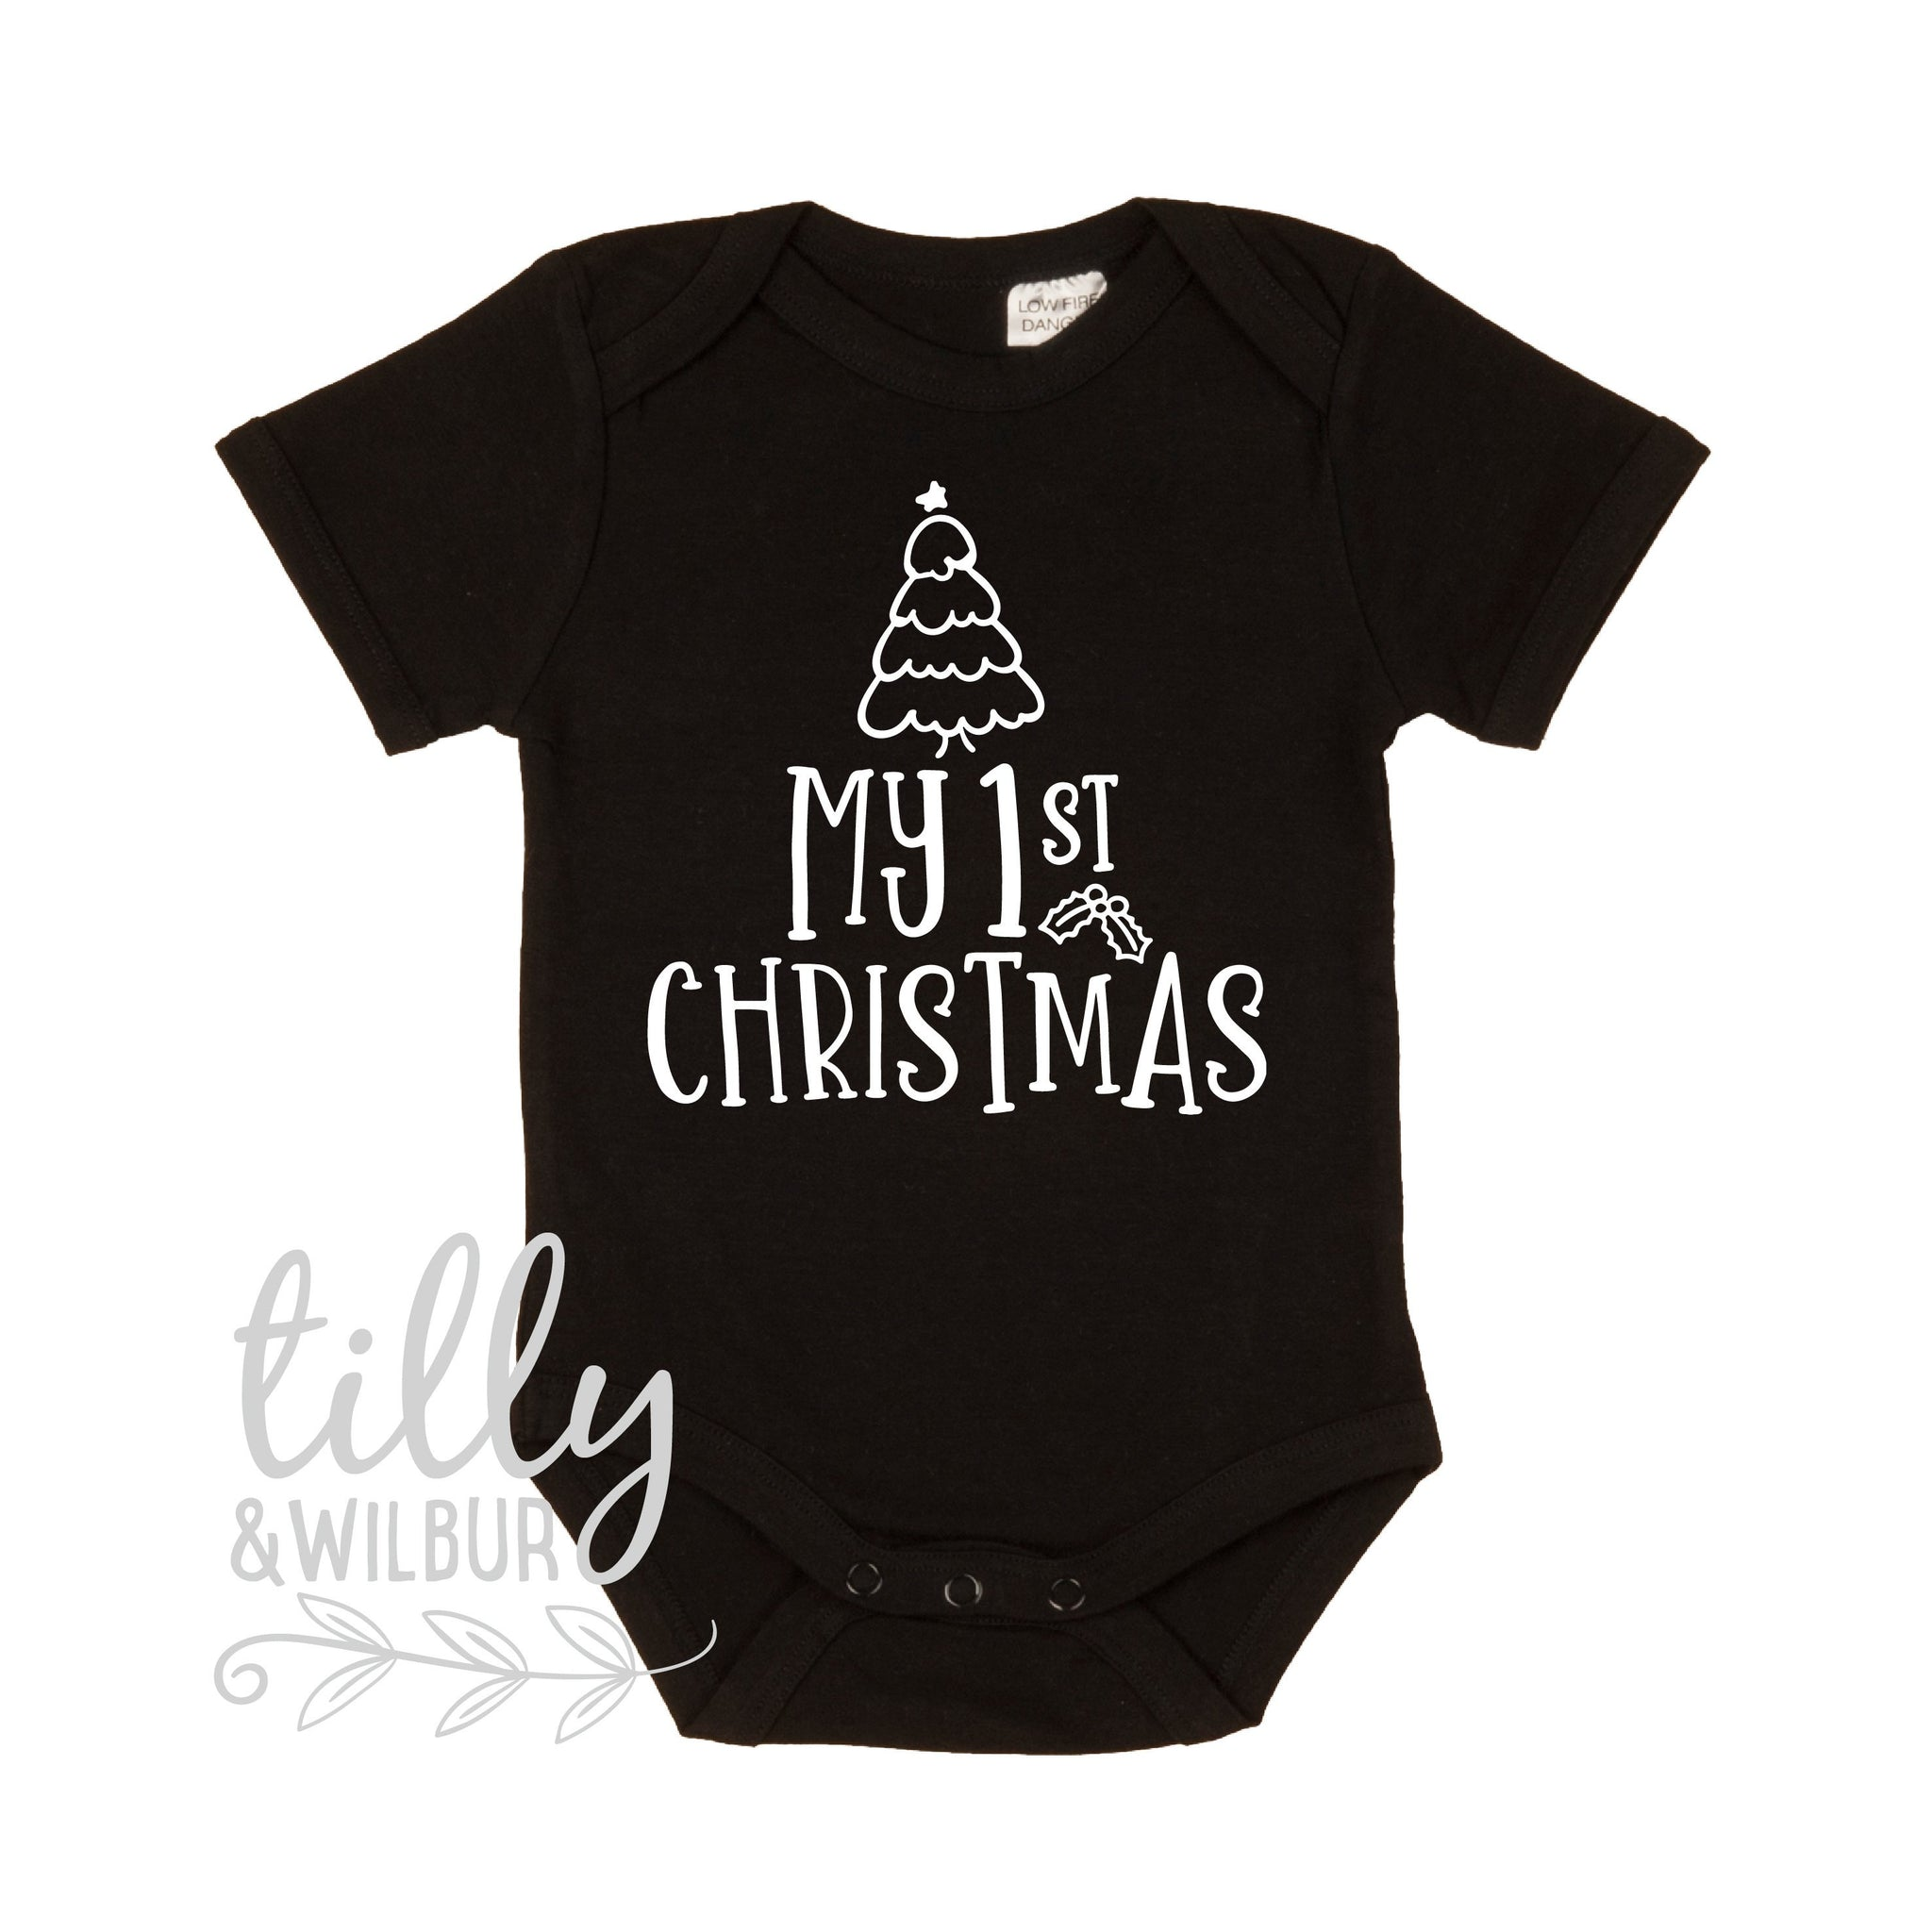 1157f0fd58f1 My First Christmas, 1st Christmas Baby Outfit, First Xmas Baby Bodysuit,  Unisex Christmas